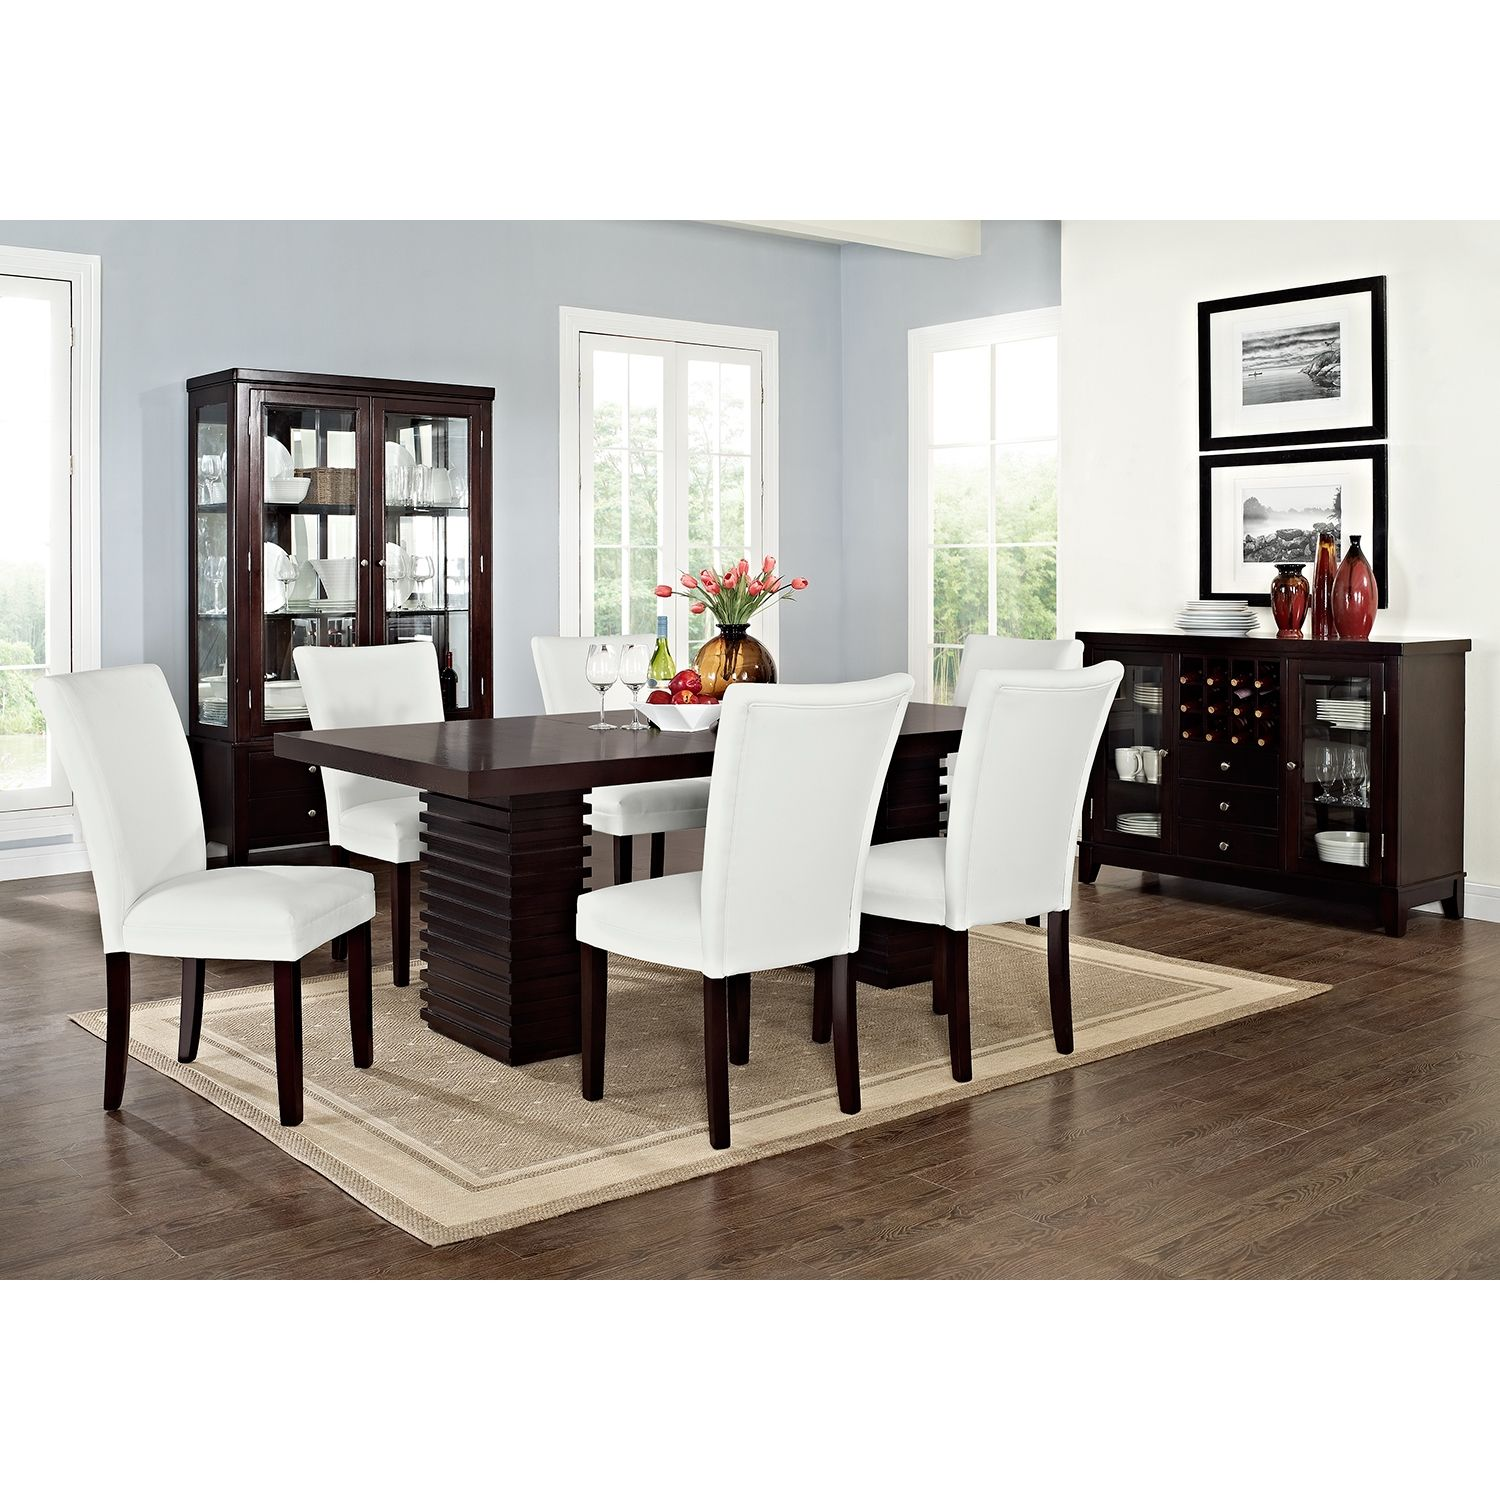 Awesome Paragon Caravelle Iv 7 Pc Dining Room Value City Ibusinesslaw Wood Chair Design Ideas Ibusinesslaworg